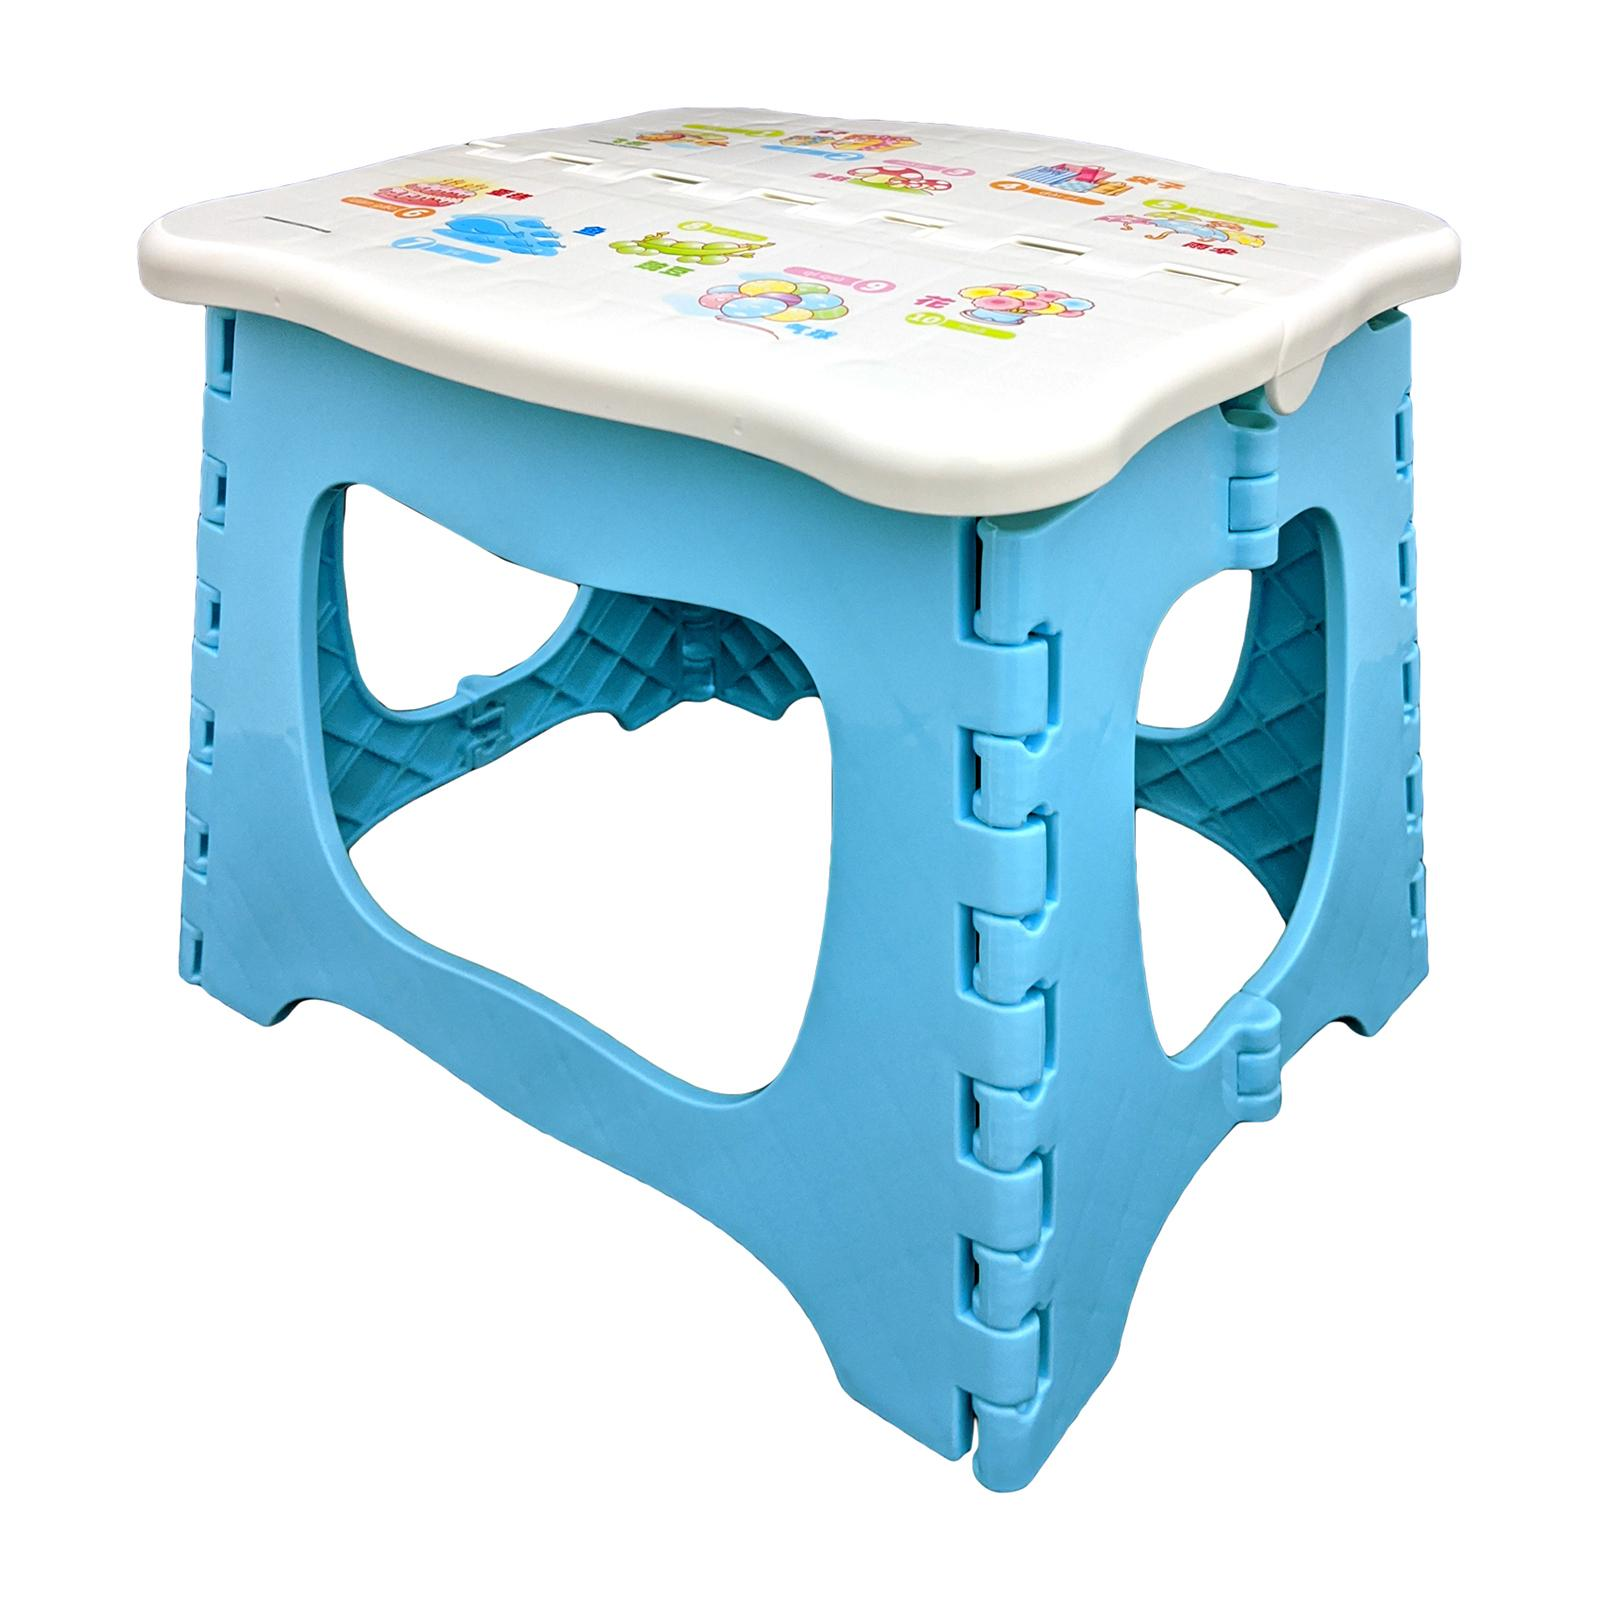 KangjiaBao Little Genius Plastic Foldable Stool 23 Cm (Blue)